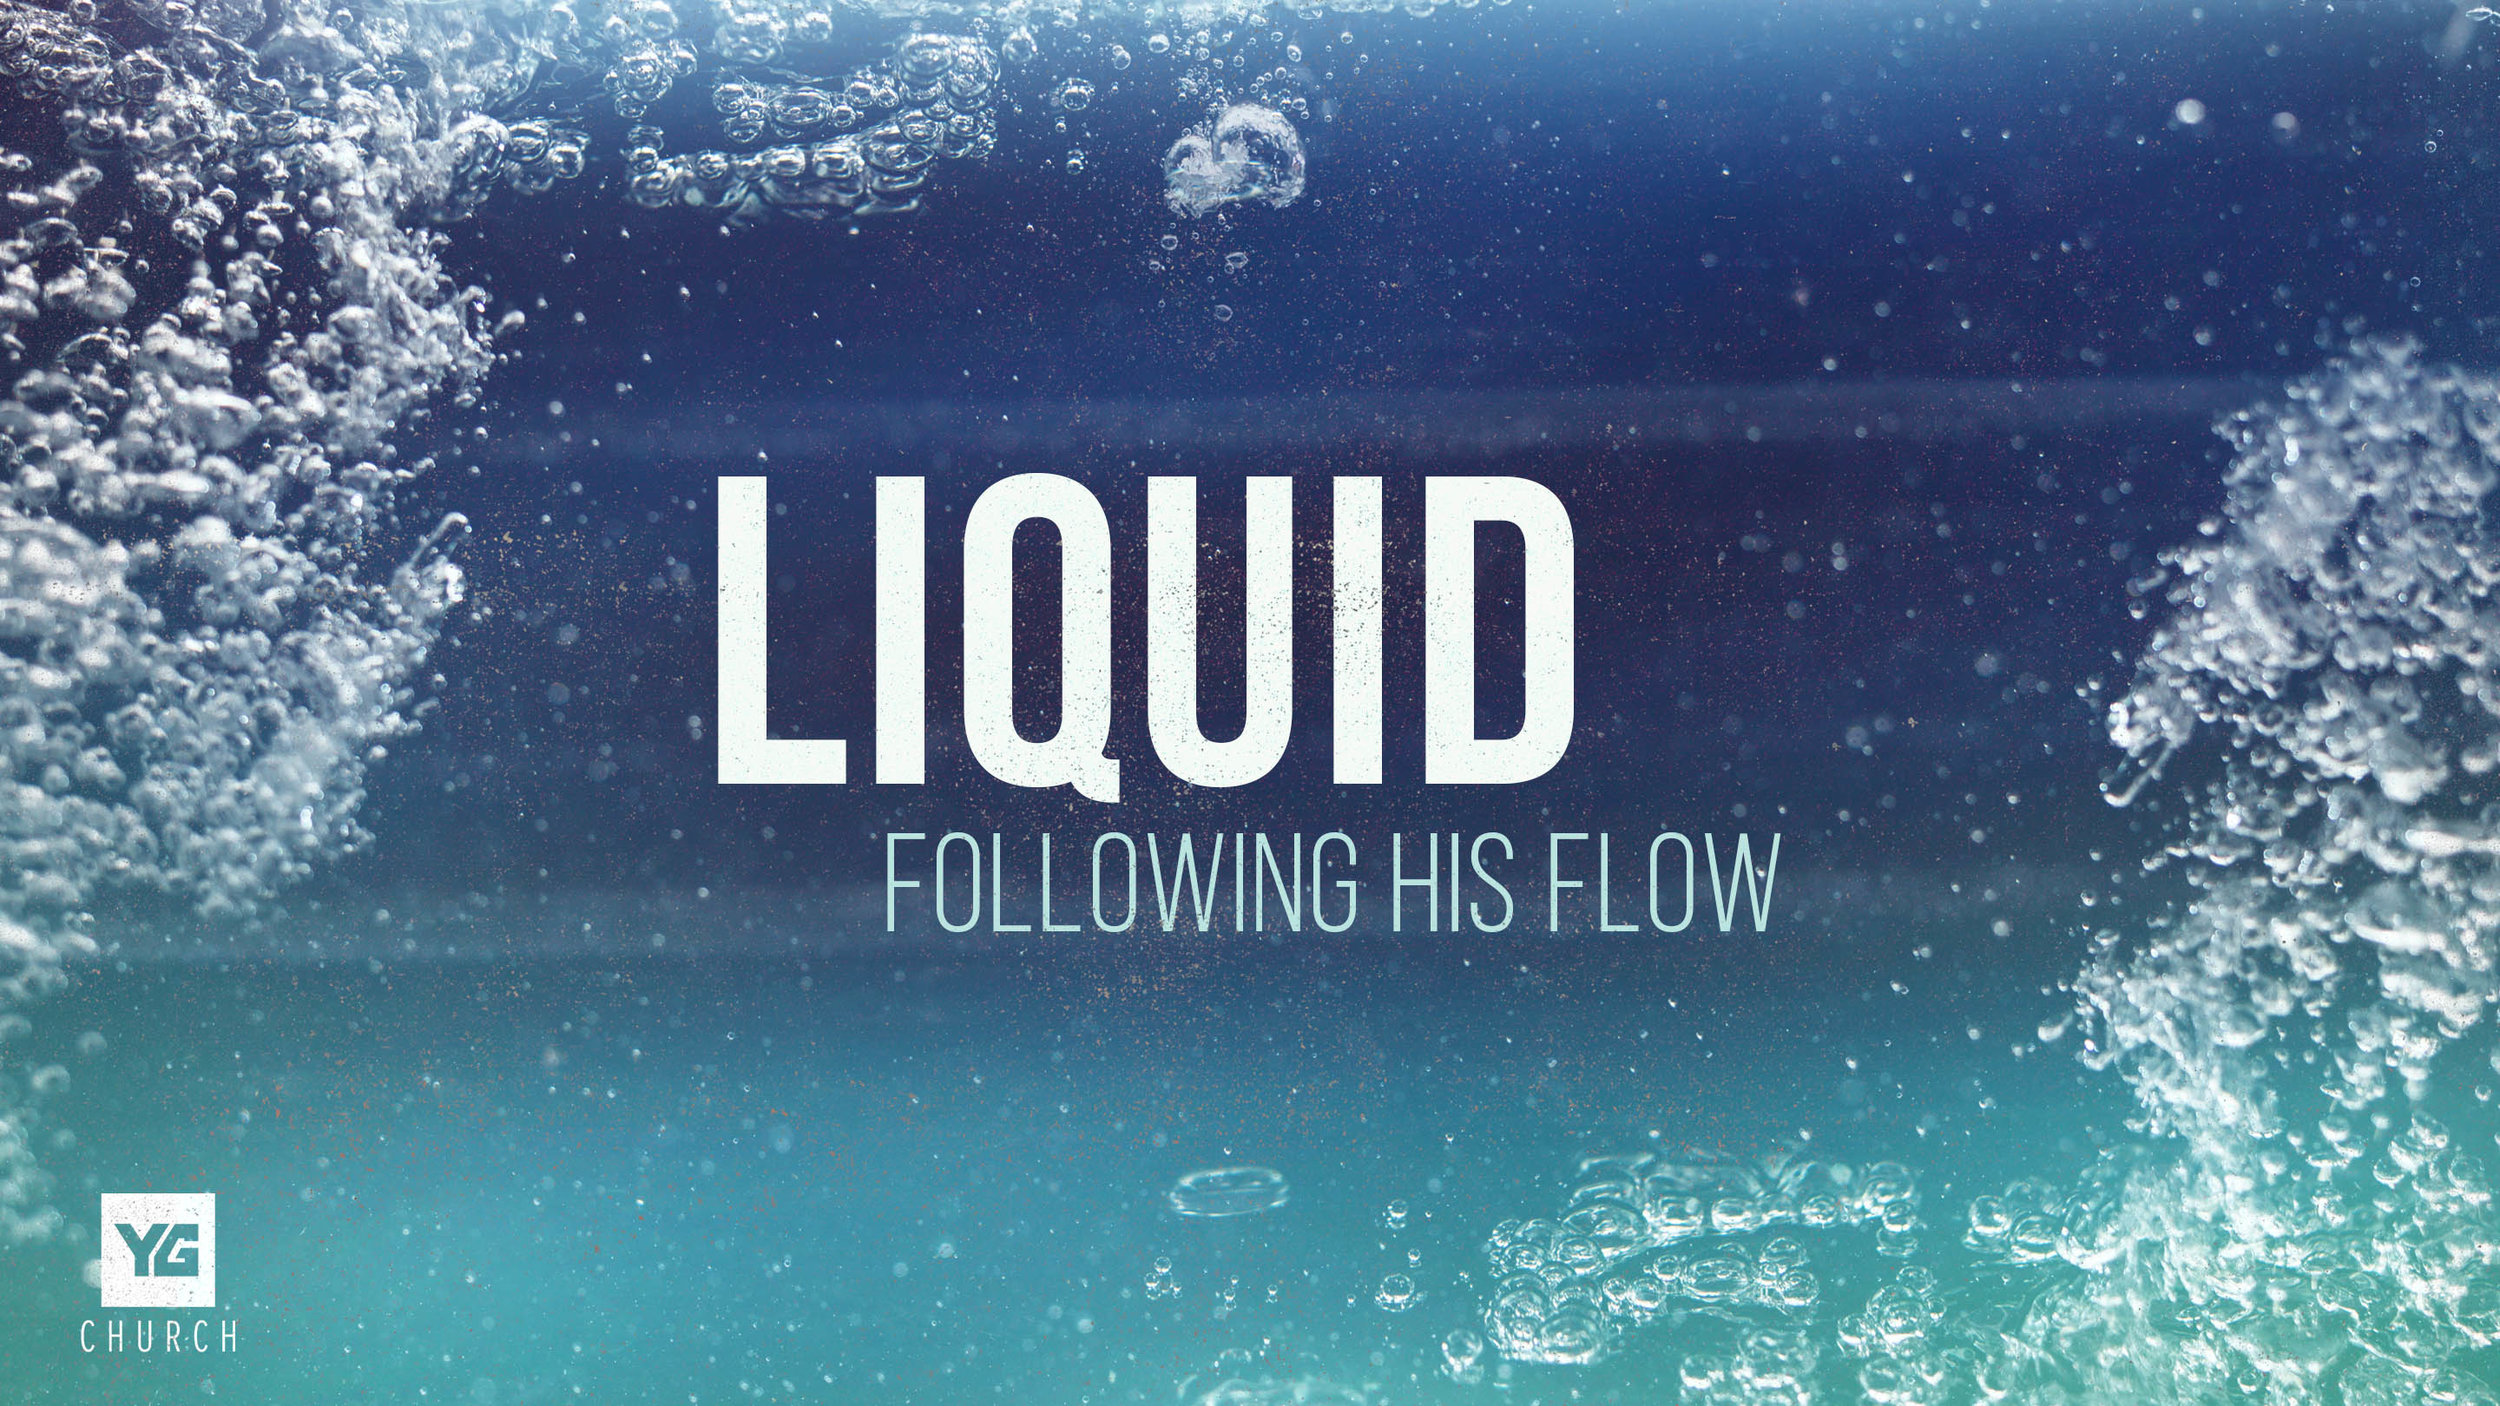 Jump in! Saturdays, 10:15AM [Central], ygchurch.com #LiquidYG #ygchurch